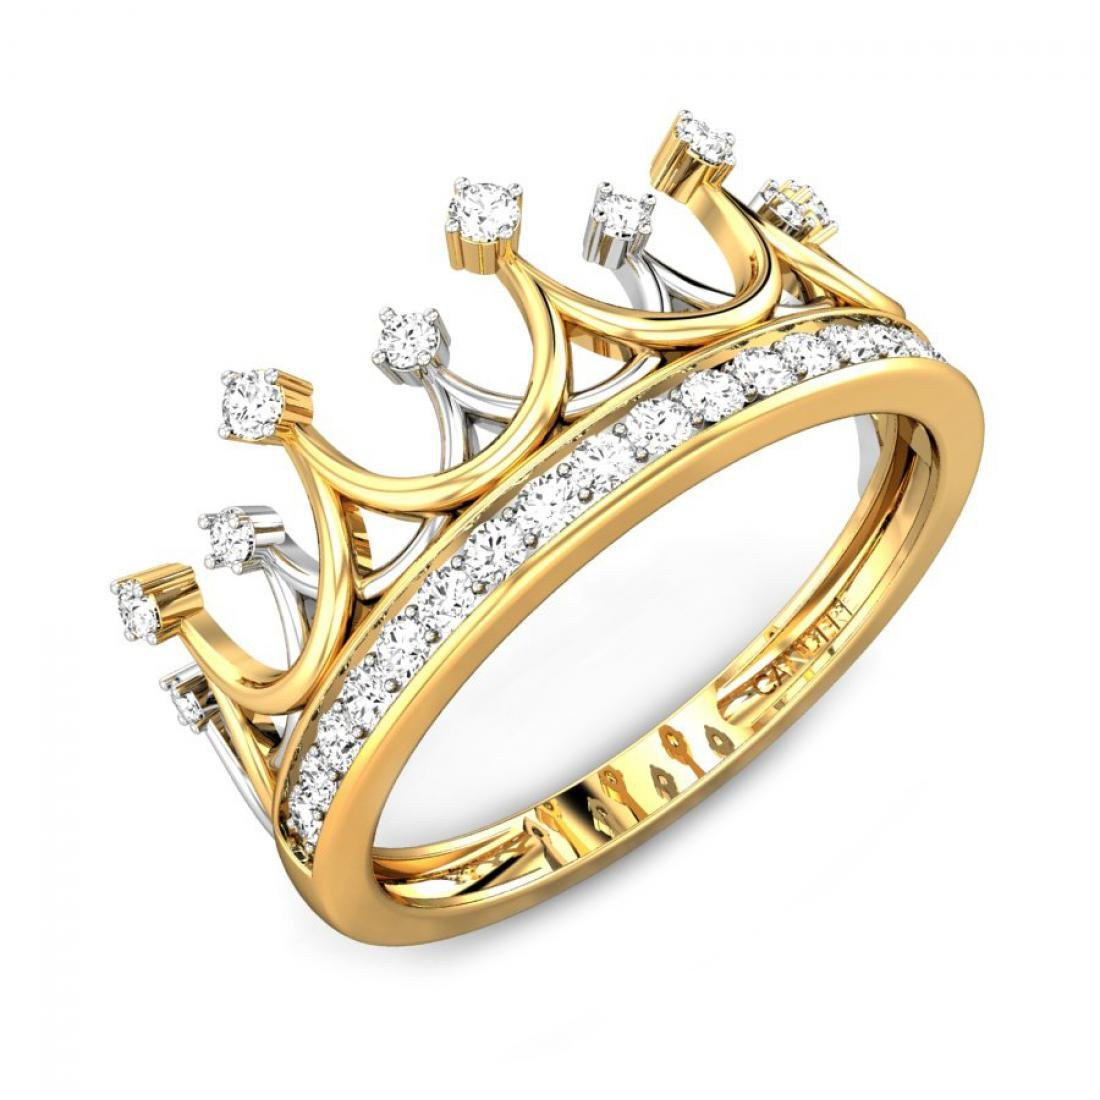 0.21 (ctw) 14K gold & diamond princess crown ring, IGI certified, I-J, SI1-SI2 (1/5 ctw)